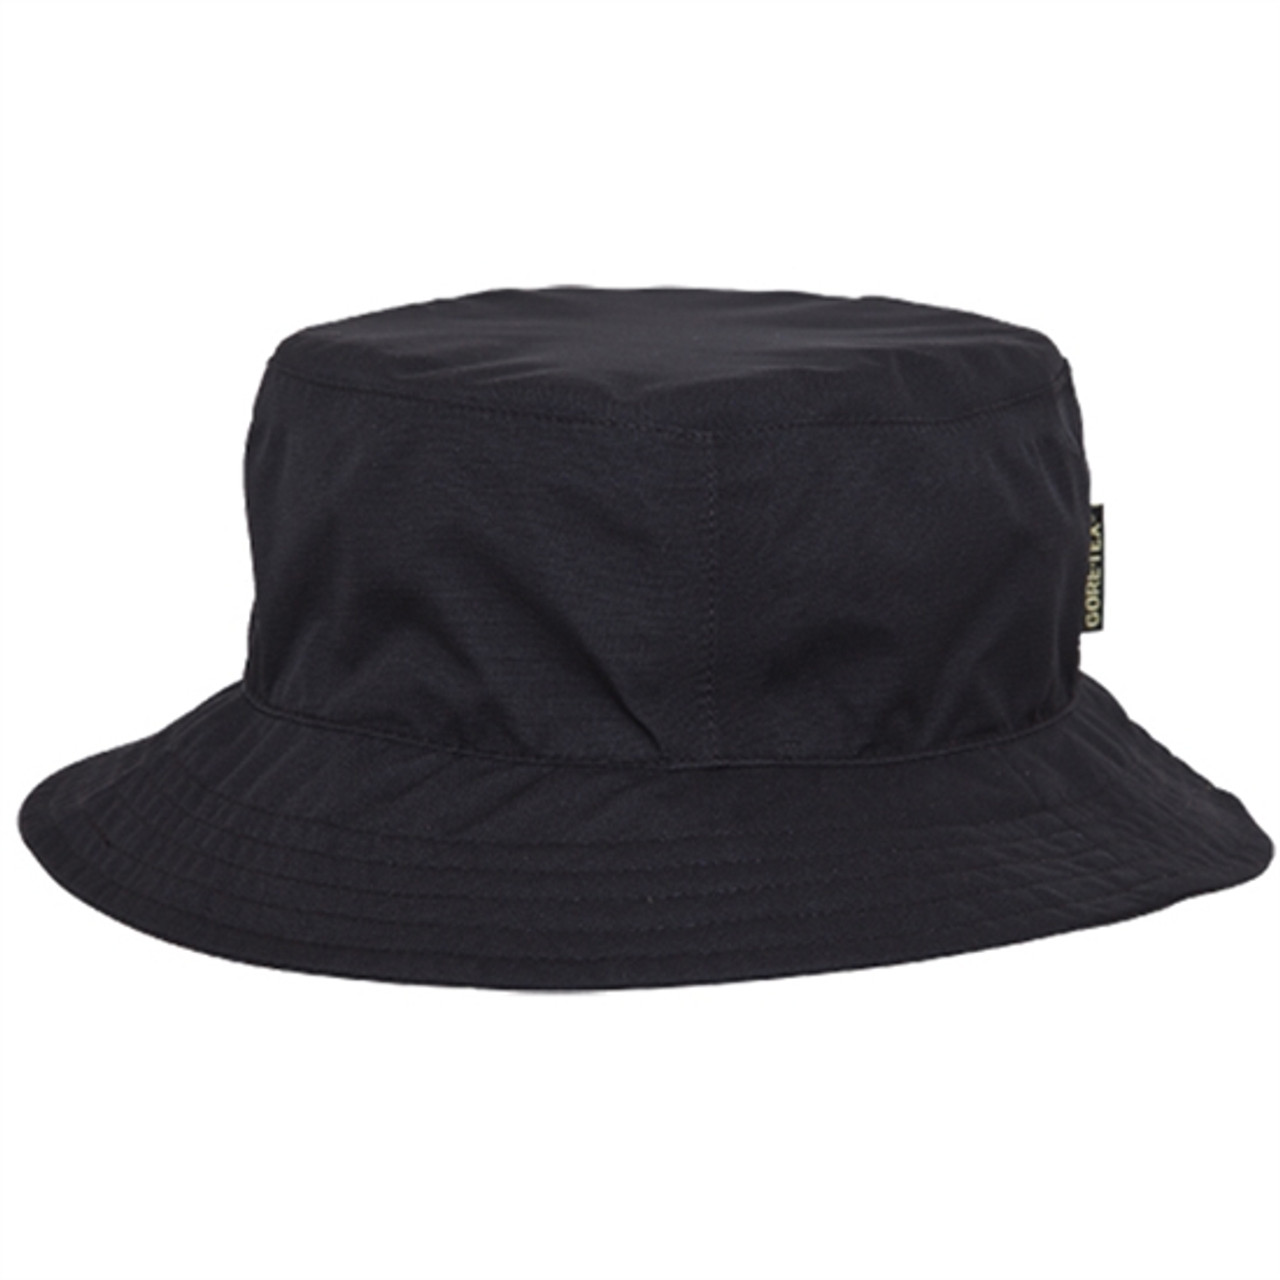 SUNICE Women s Gore-Tex Bucket Hat Black  36c2259ab55